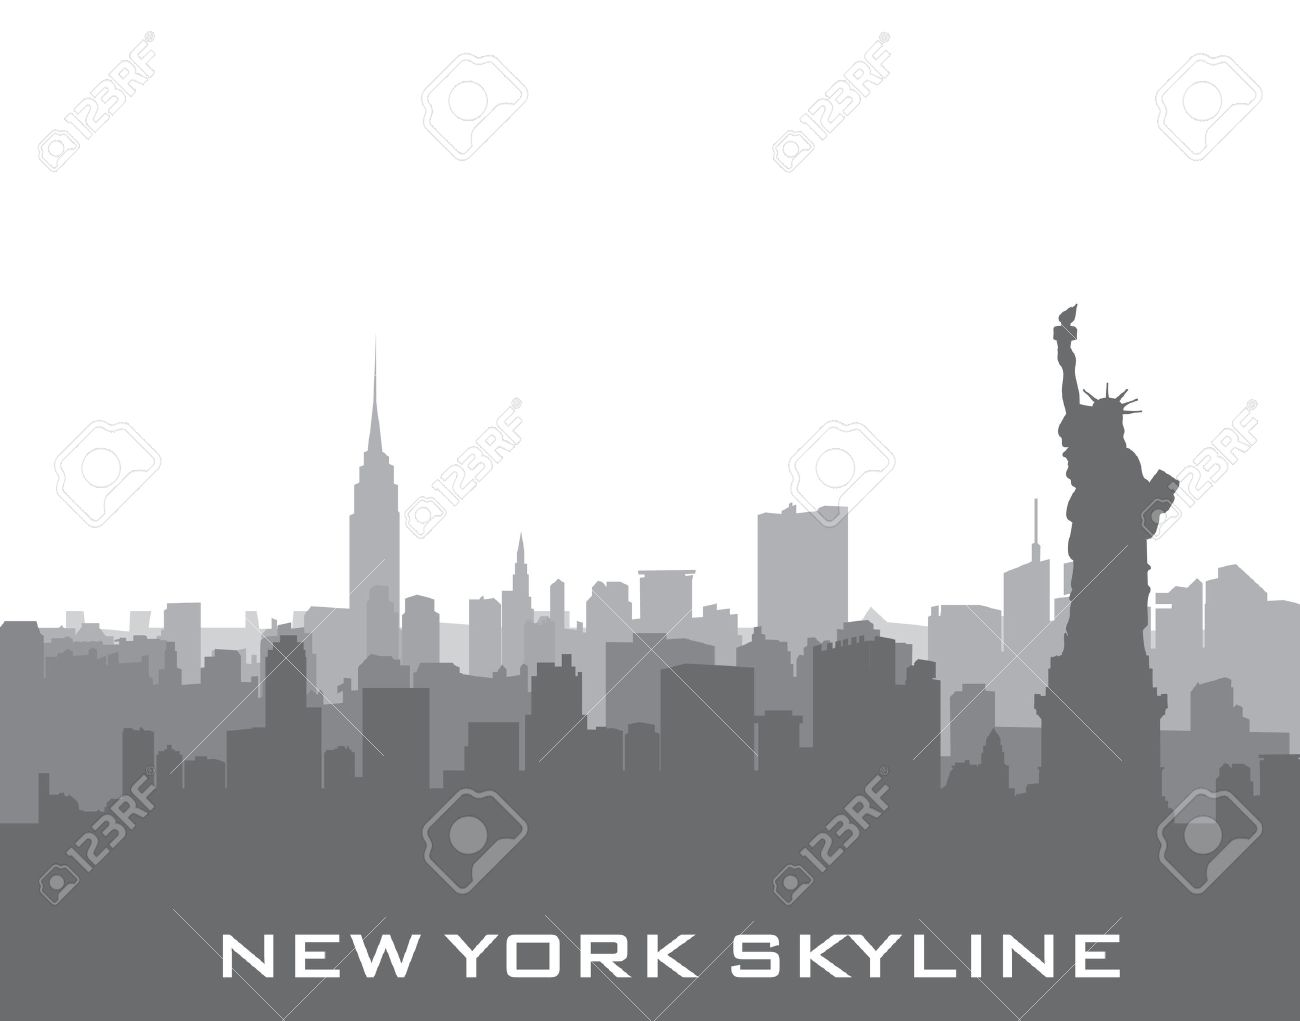 New York, USA skyline background. City silhouette with Liberty monument. American landmarks. Urban architectural landscape. Cityscape with famous buildings - 60421467